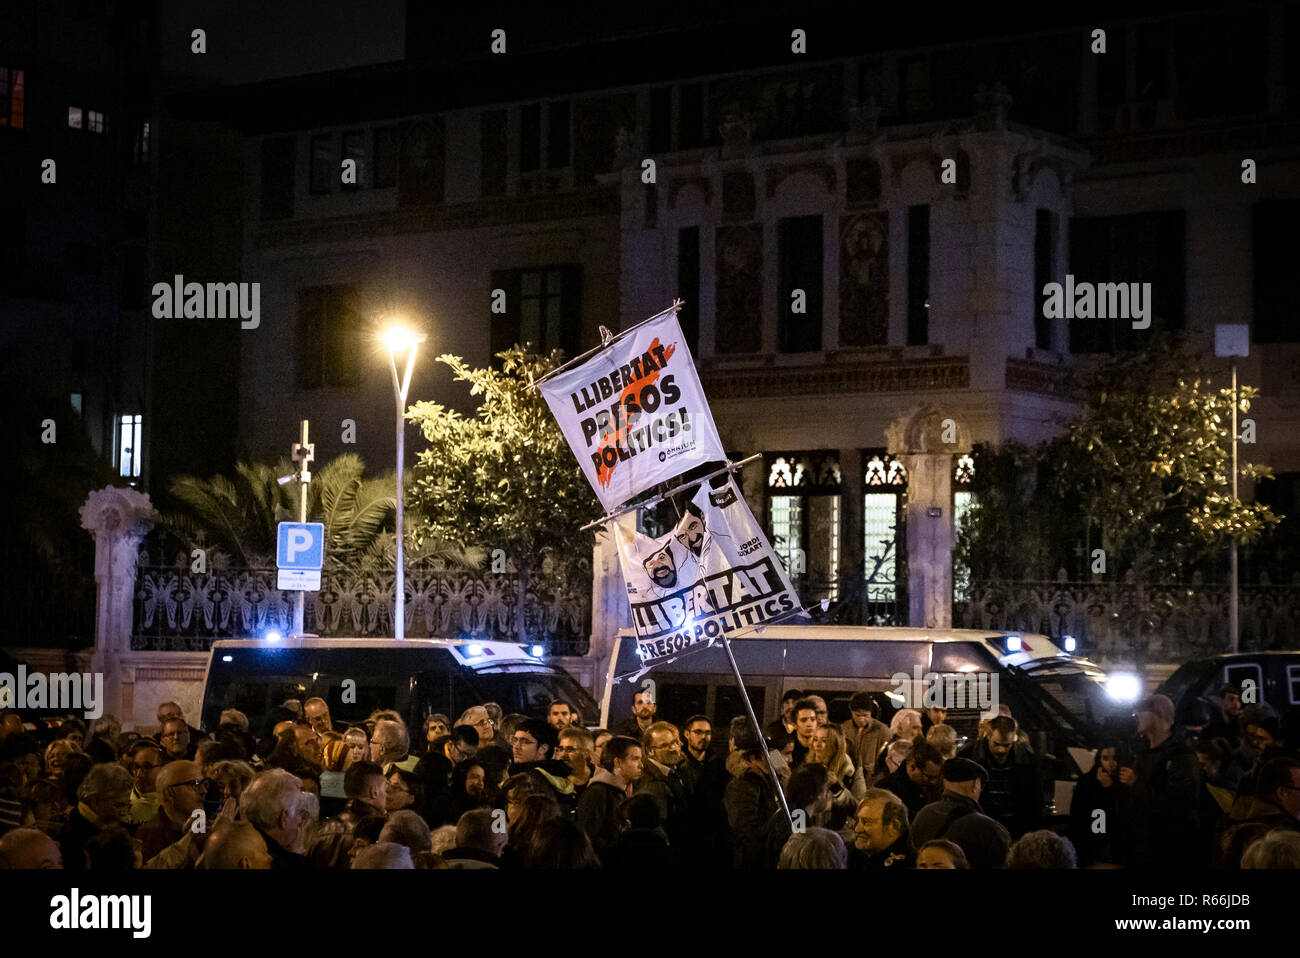 A crowd of pro-independence protesters are seen in front of the Delegation of the Government of Spain. Demonstrators took to the street of Barcelona in solidarity with the four political prisoners (Joaquín Form, Jordi Sànchez, Josep Rull and Jordi Turull) in prison who have begun an indefinite hunger strike. Stock Photo